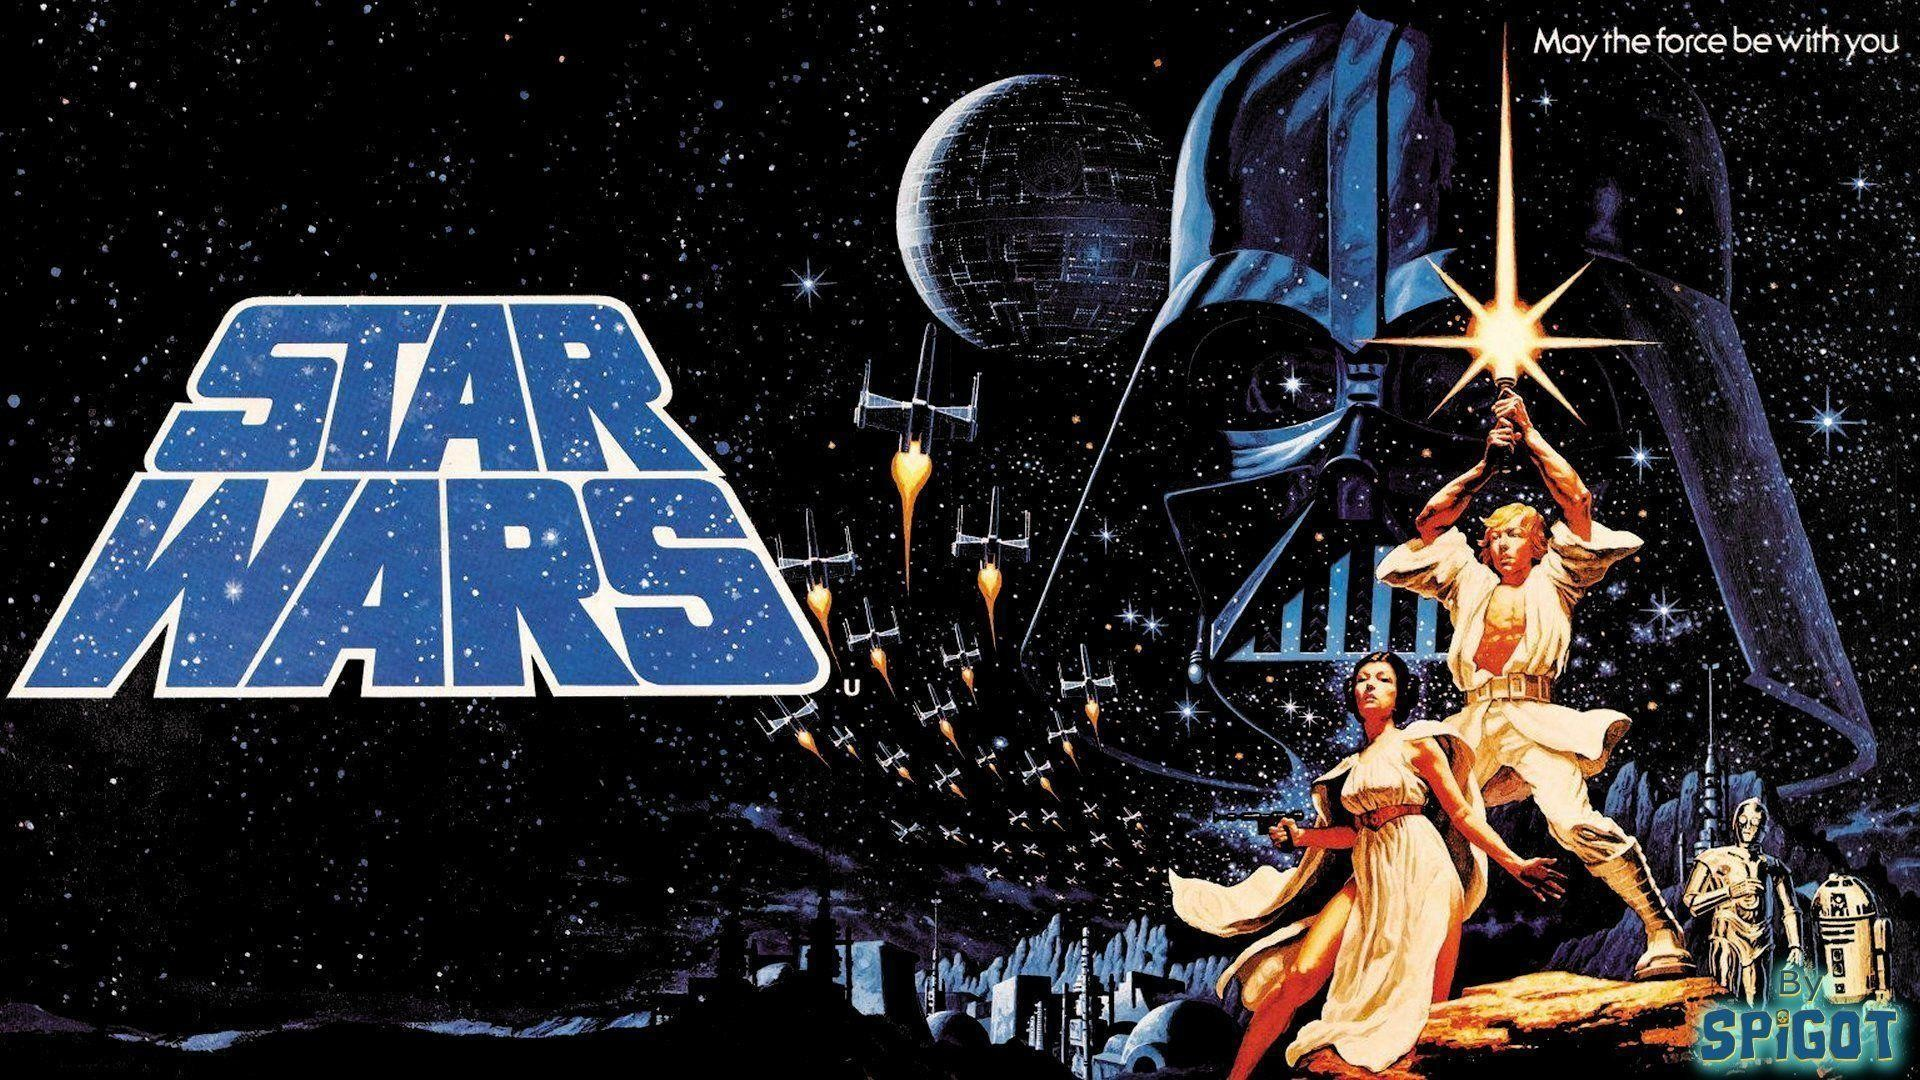 Games : Largest Of Star Wars Wallpapers For Free 1080x1920px Star .